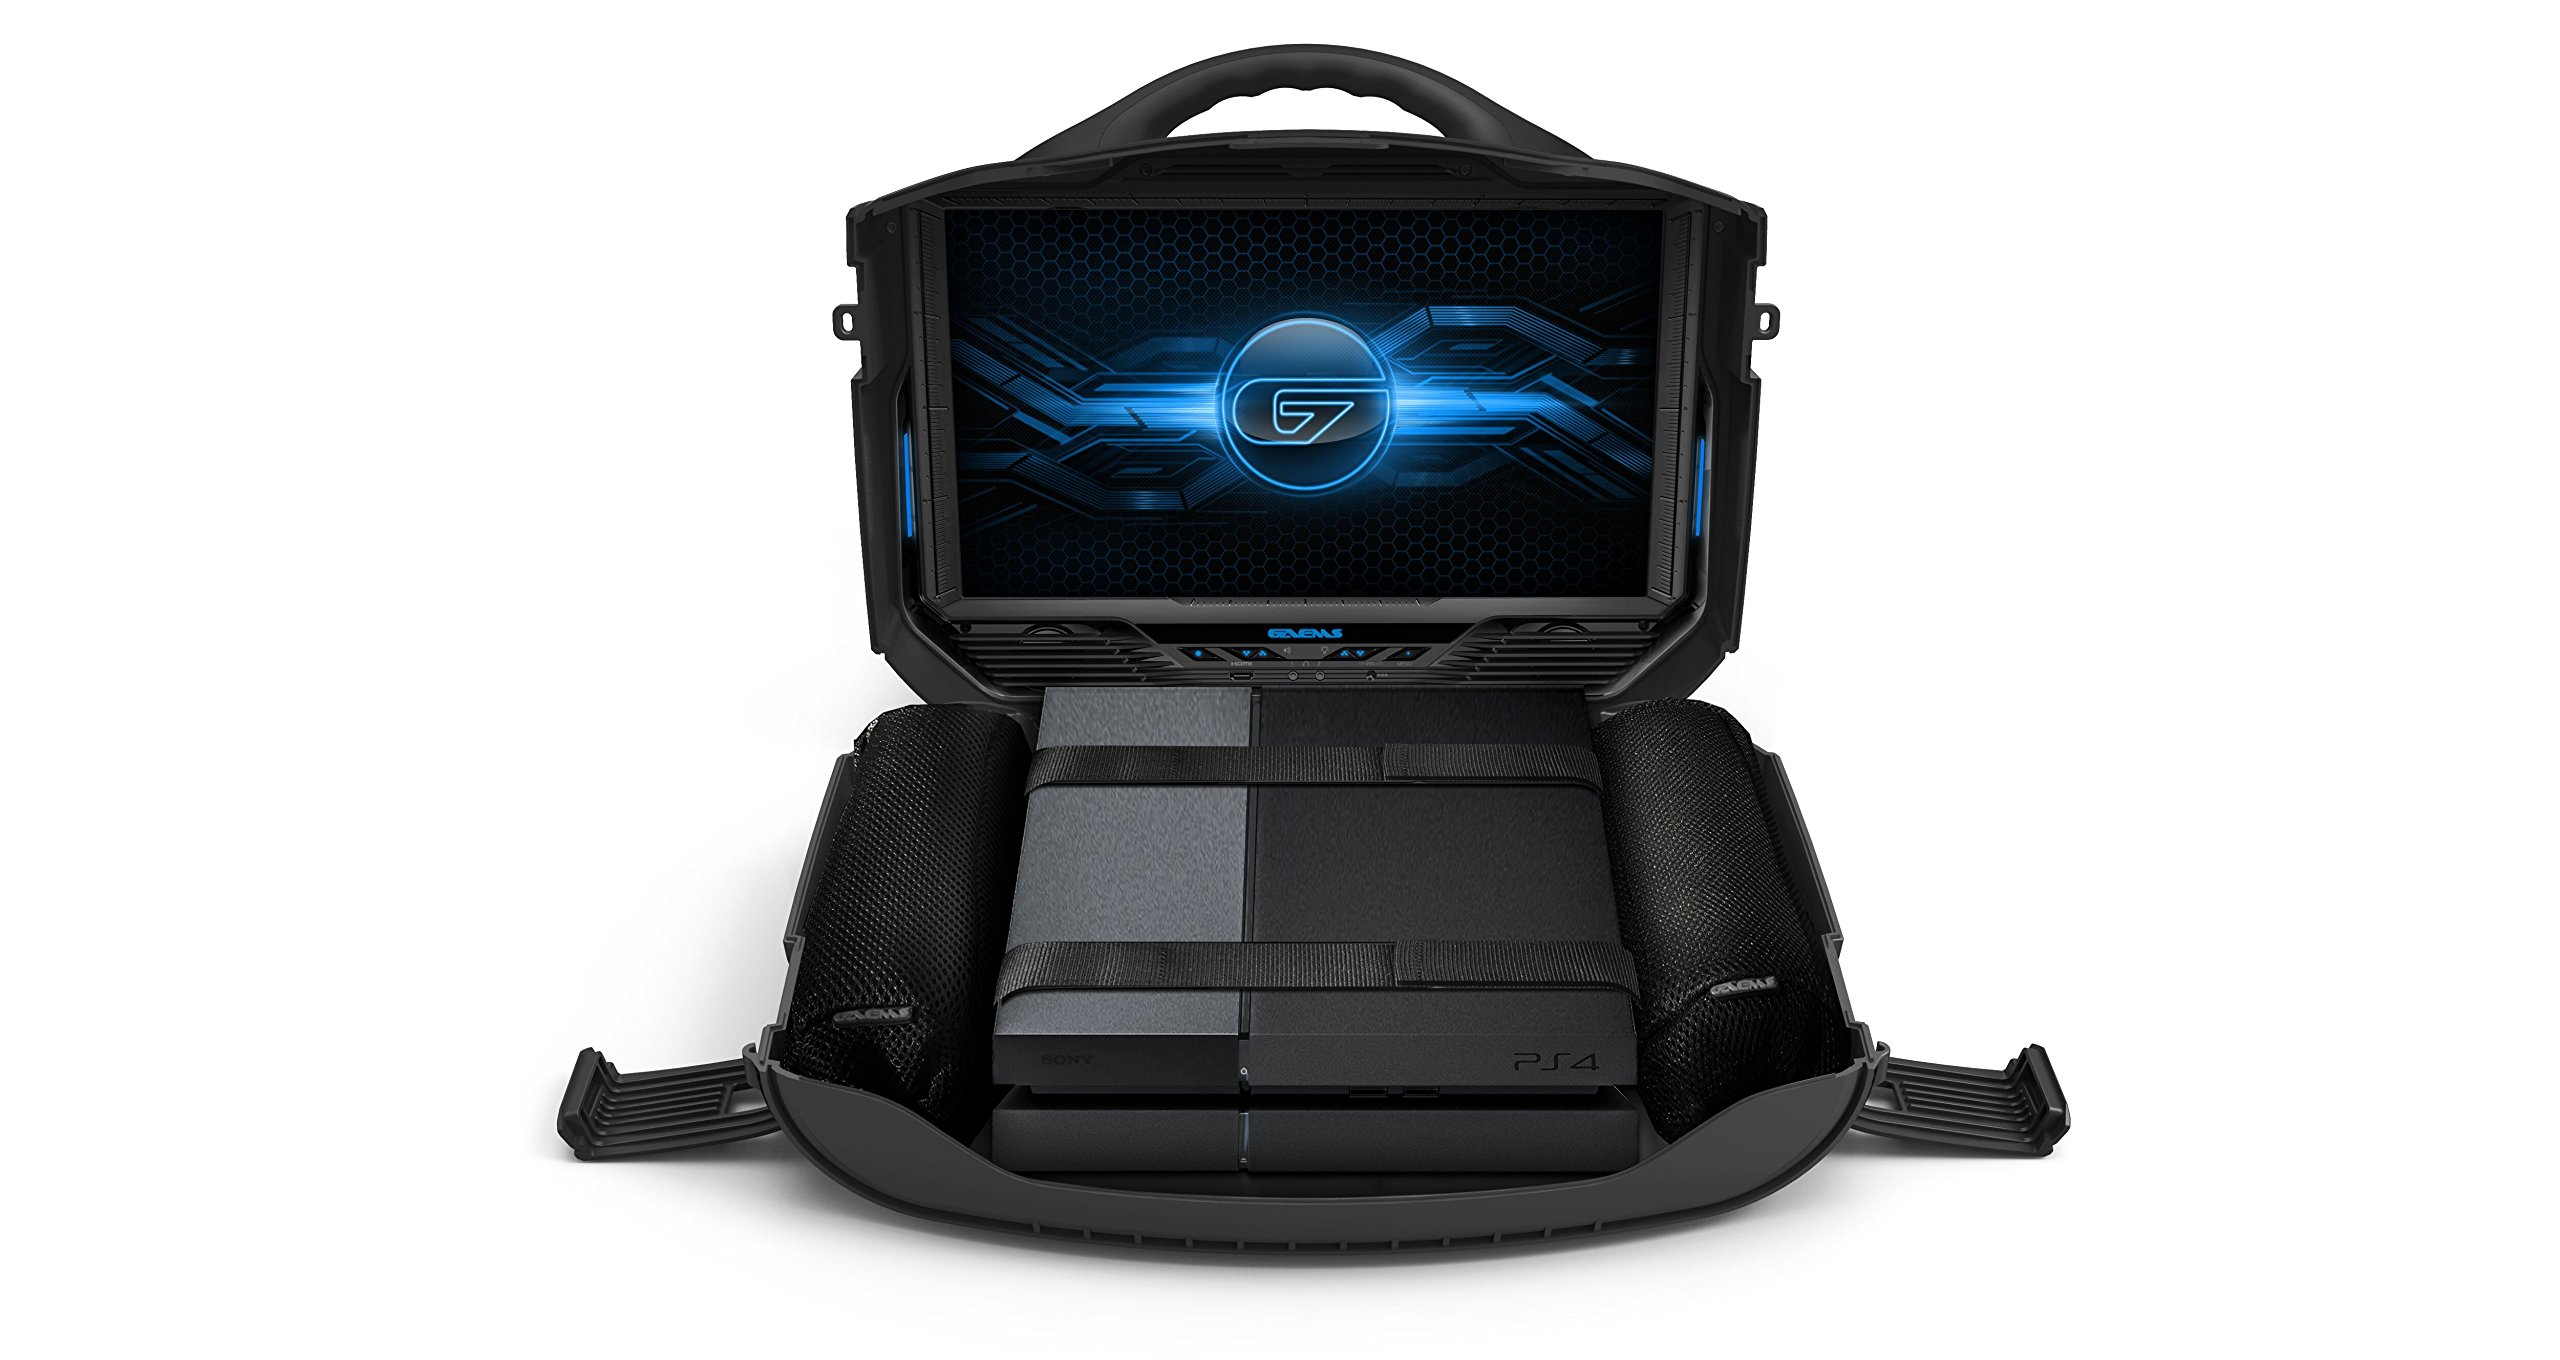 GAEMS VANGUARD Personal Gaming Environment for Xbox One S, Xbox One, PS4, PS3, Xbox 360 (Consoles Not Included) - Xbox One by GAEMS